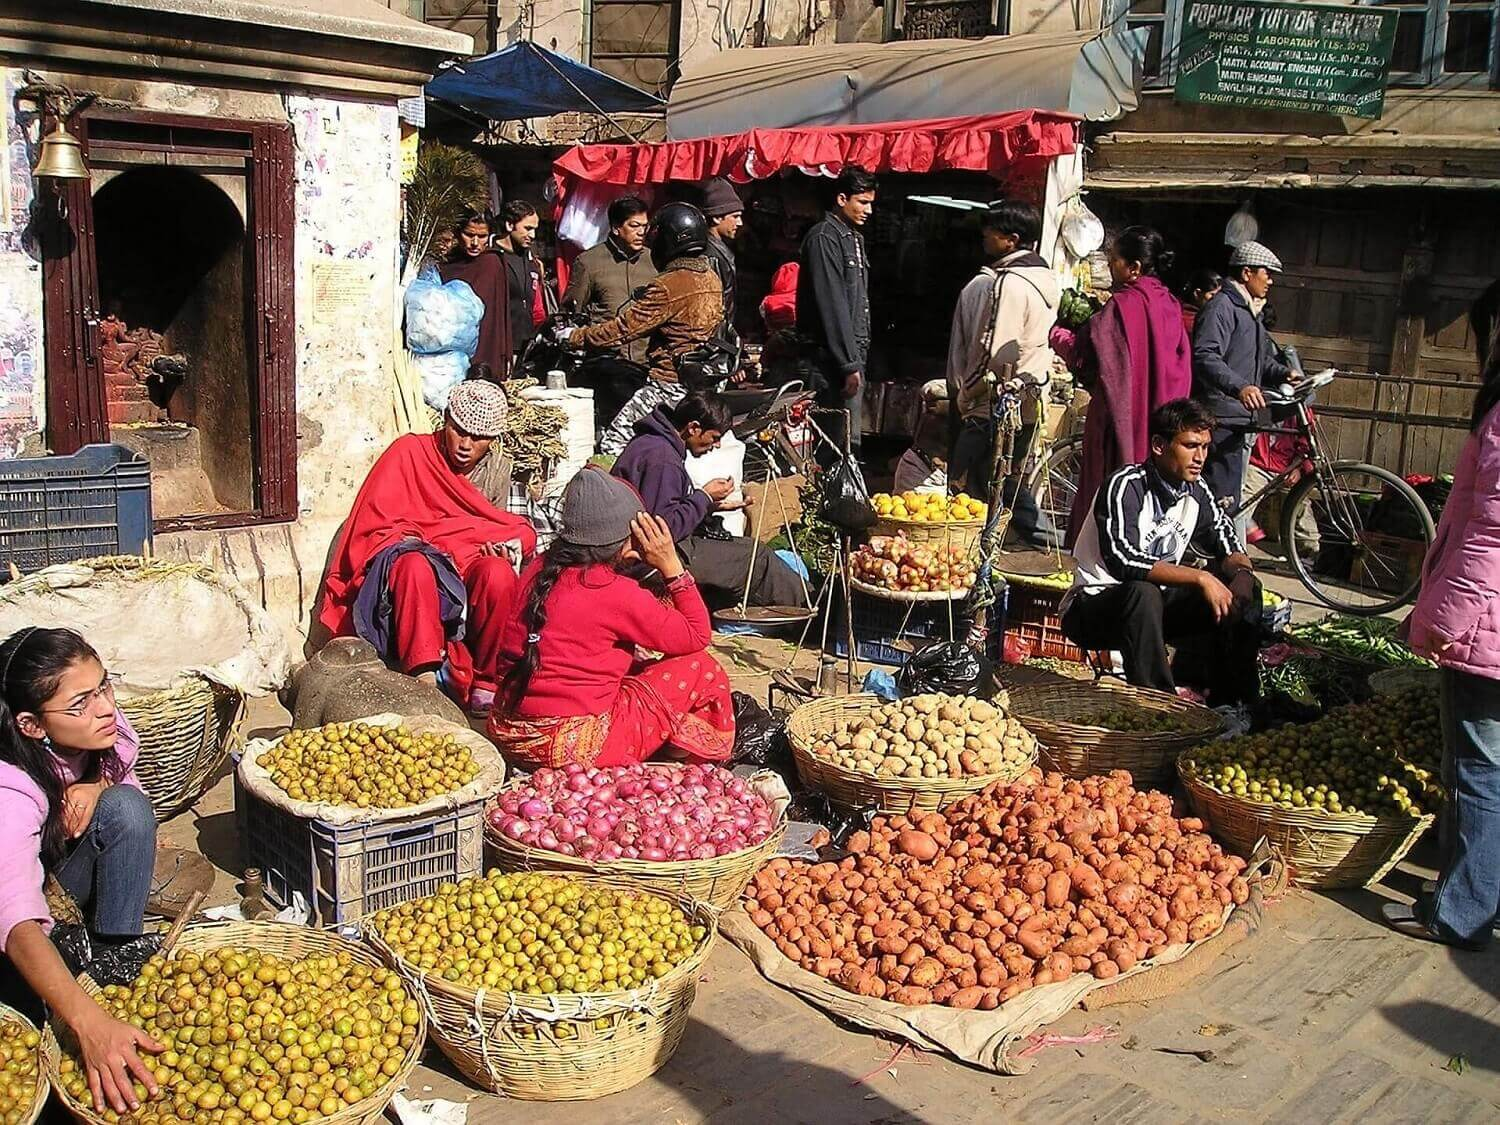 Thamel Market and small business sellers